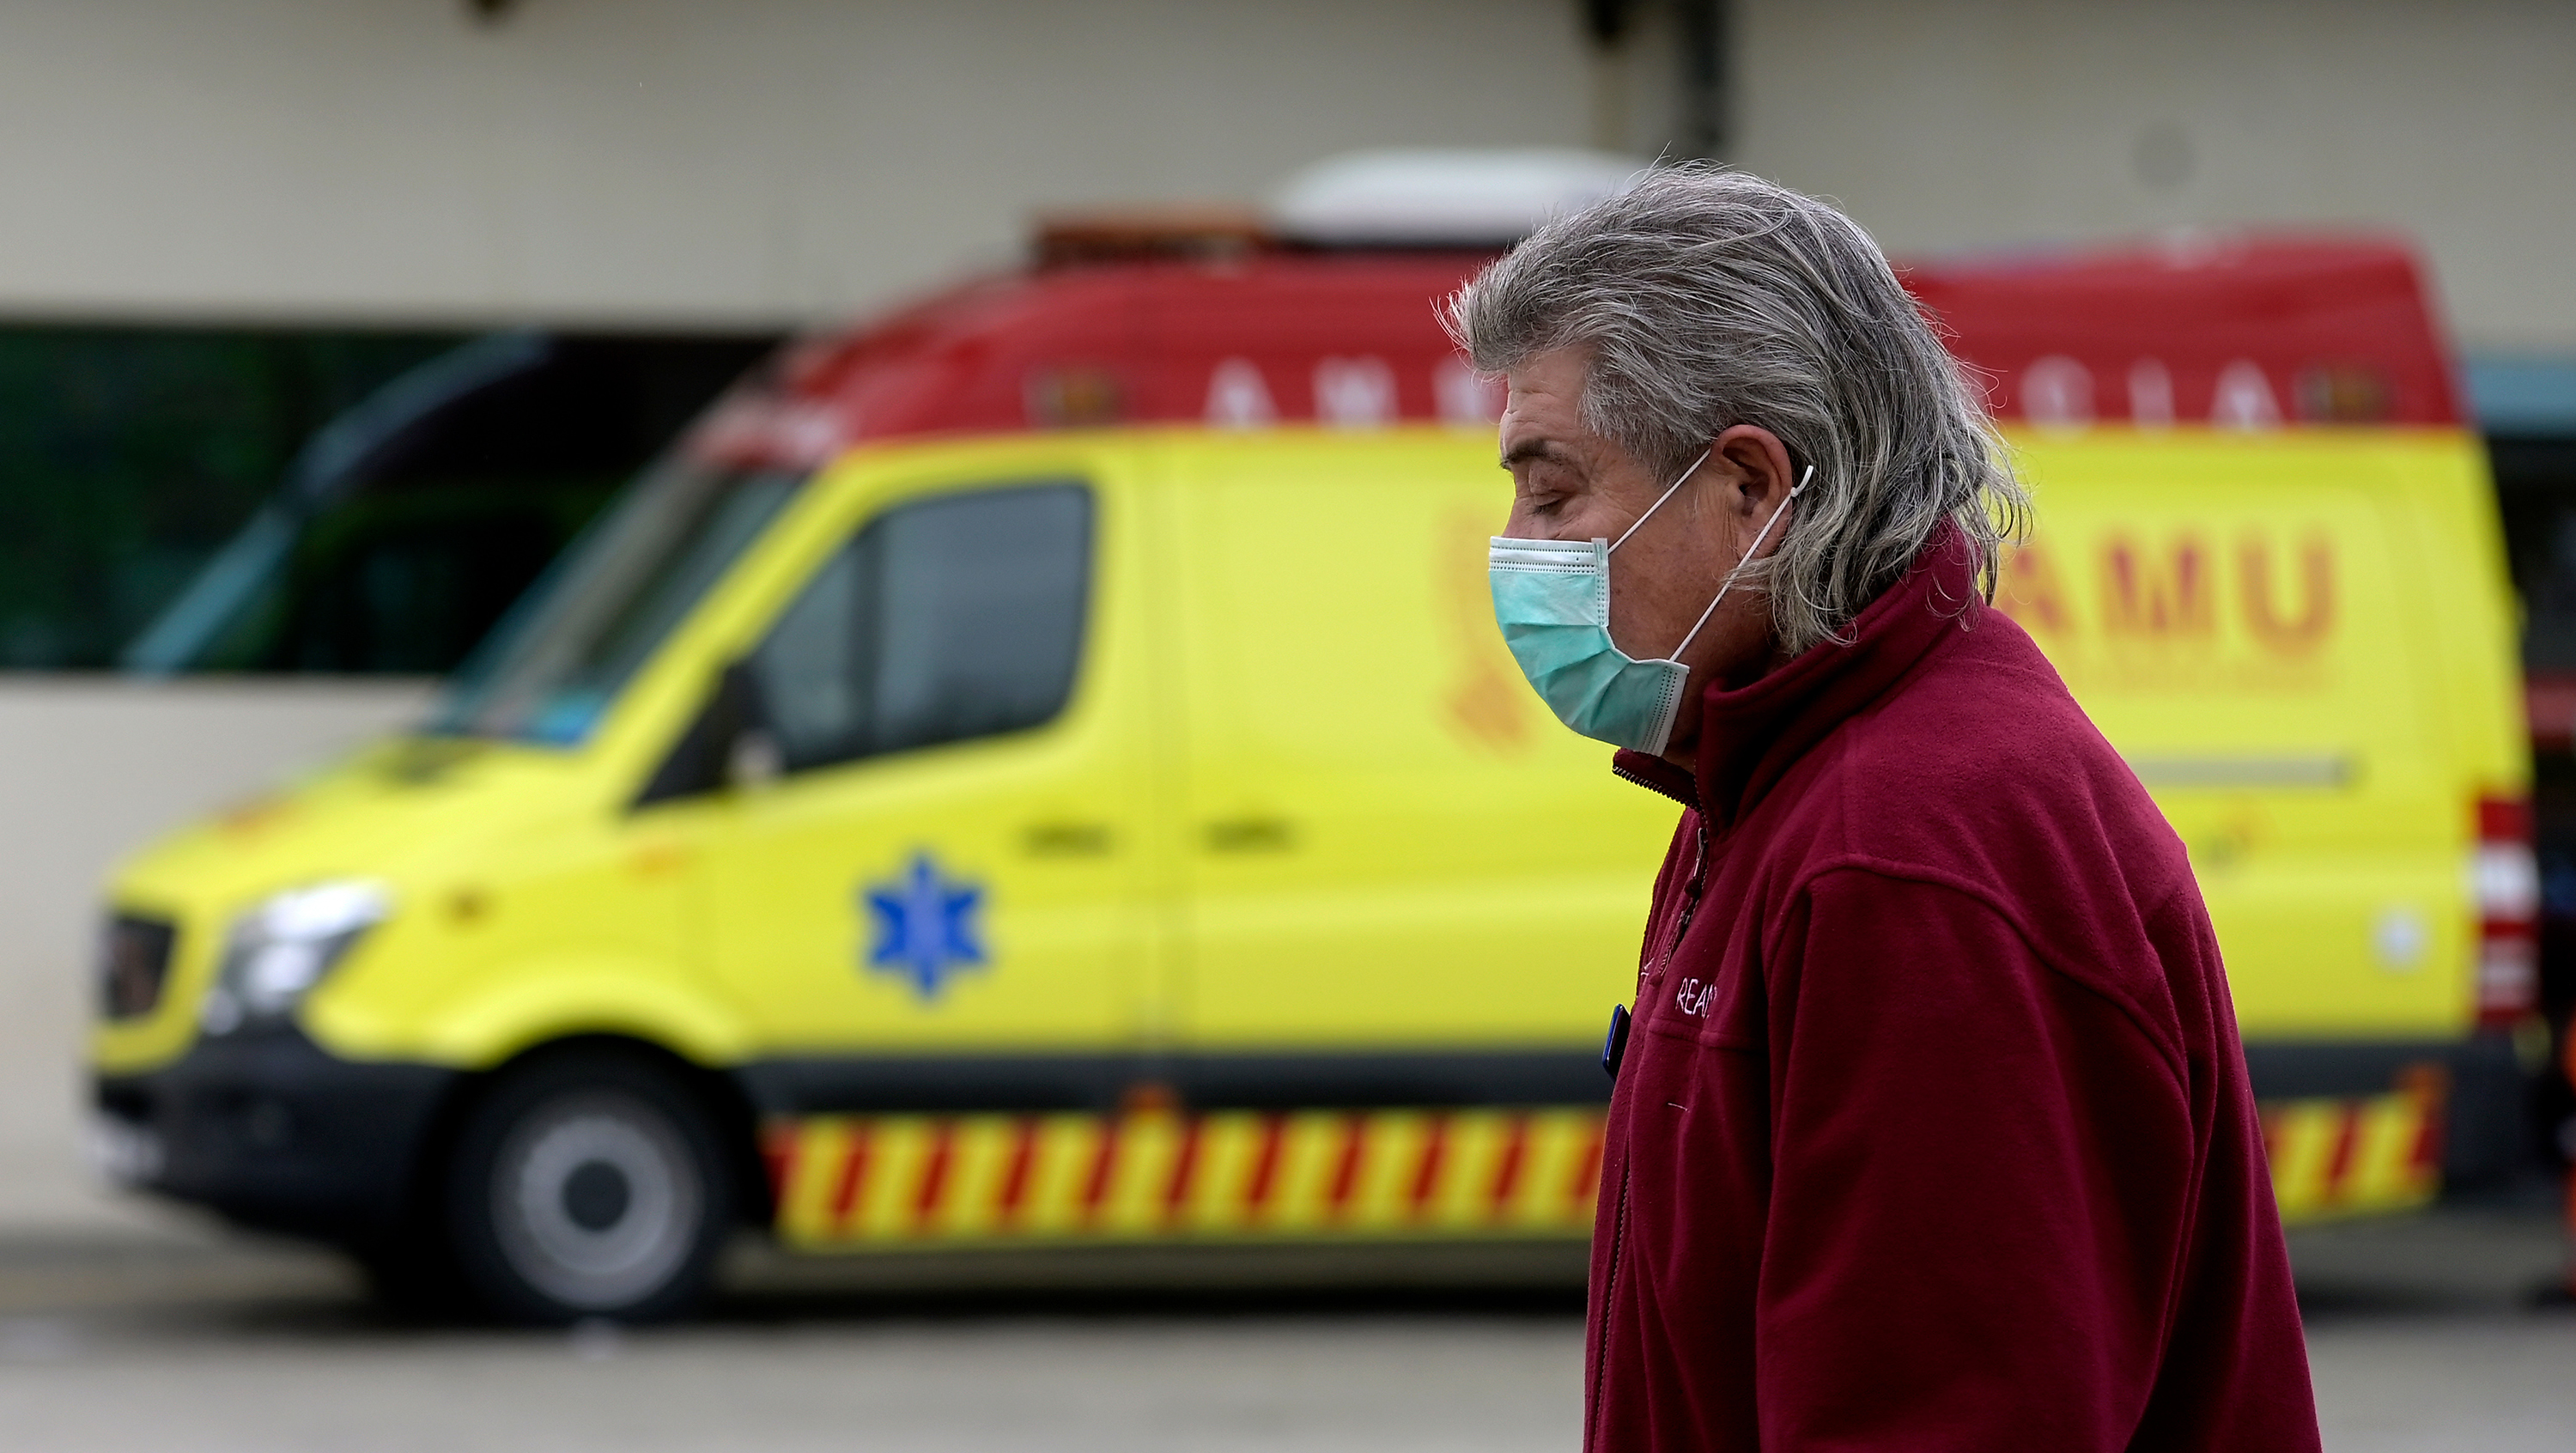 The EU can't agree on how to help Italy and Spain pay for coronavirus relief